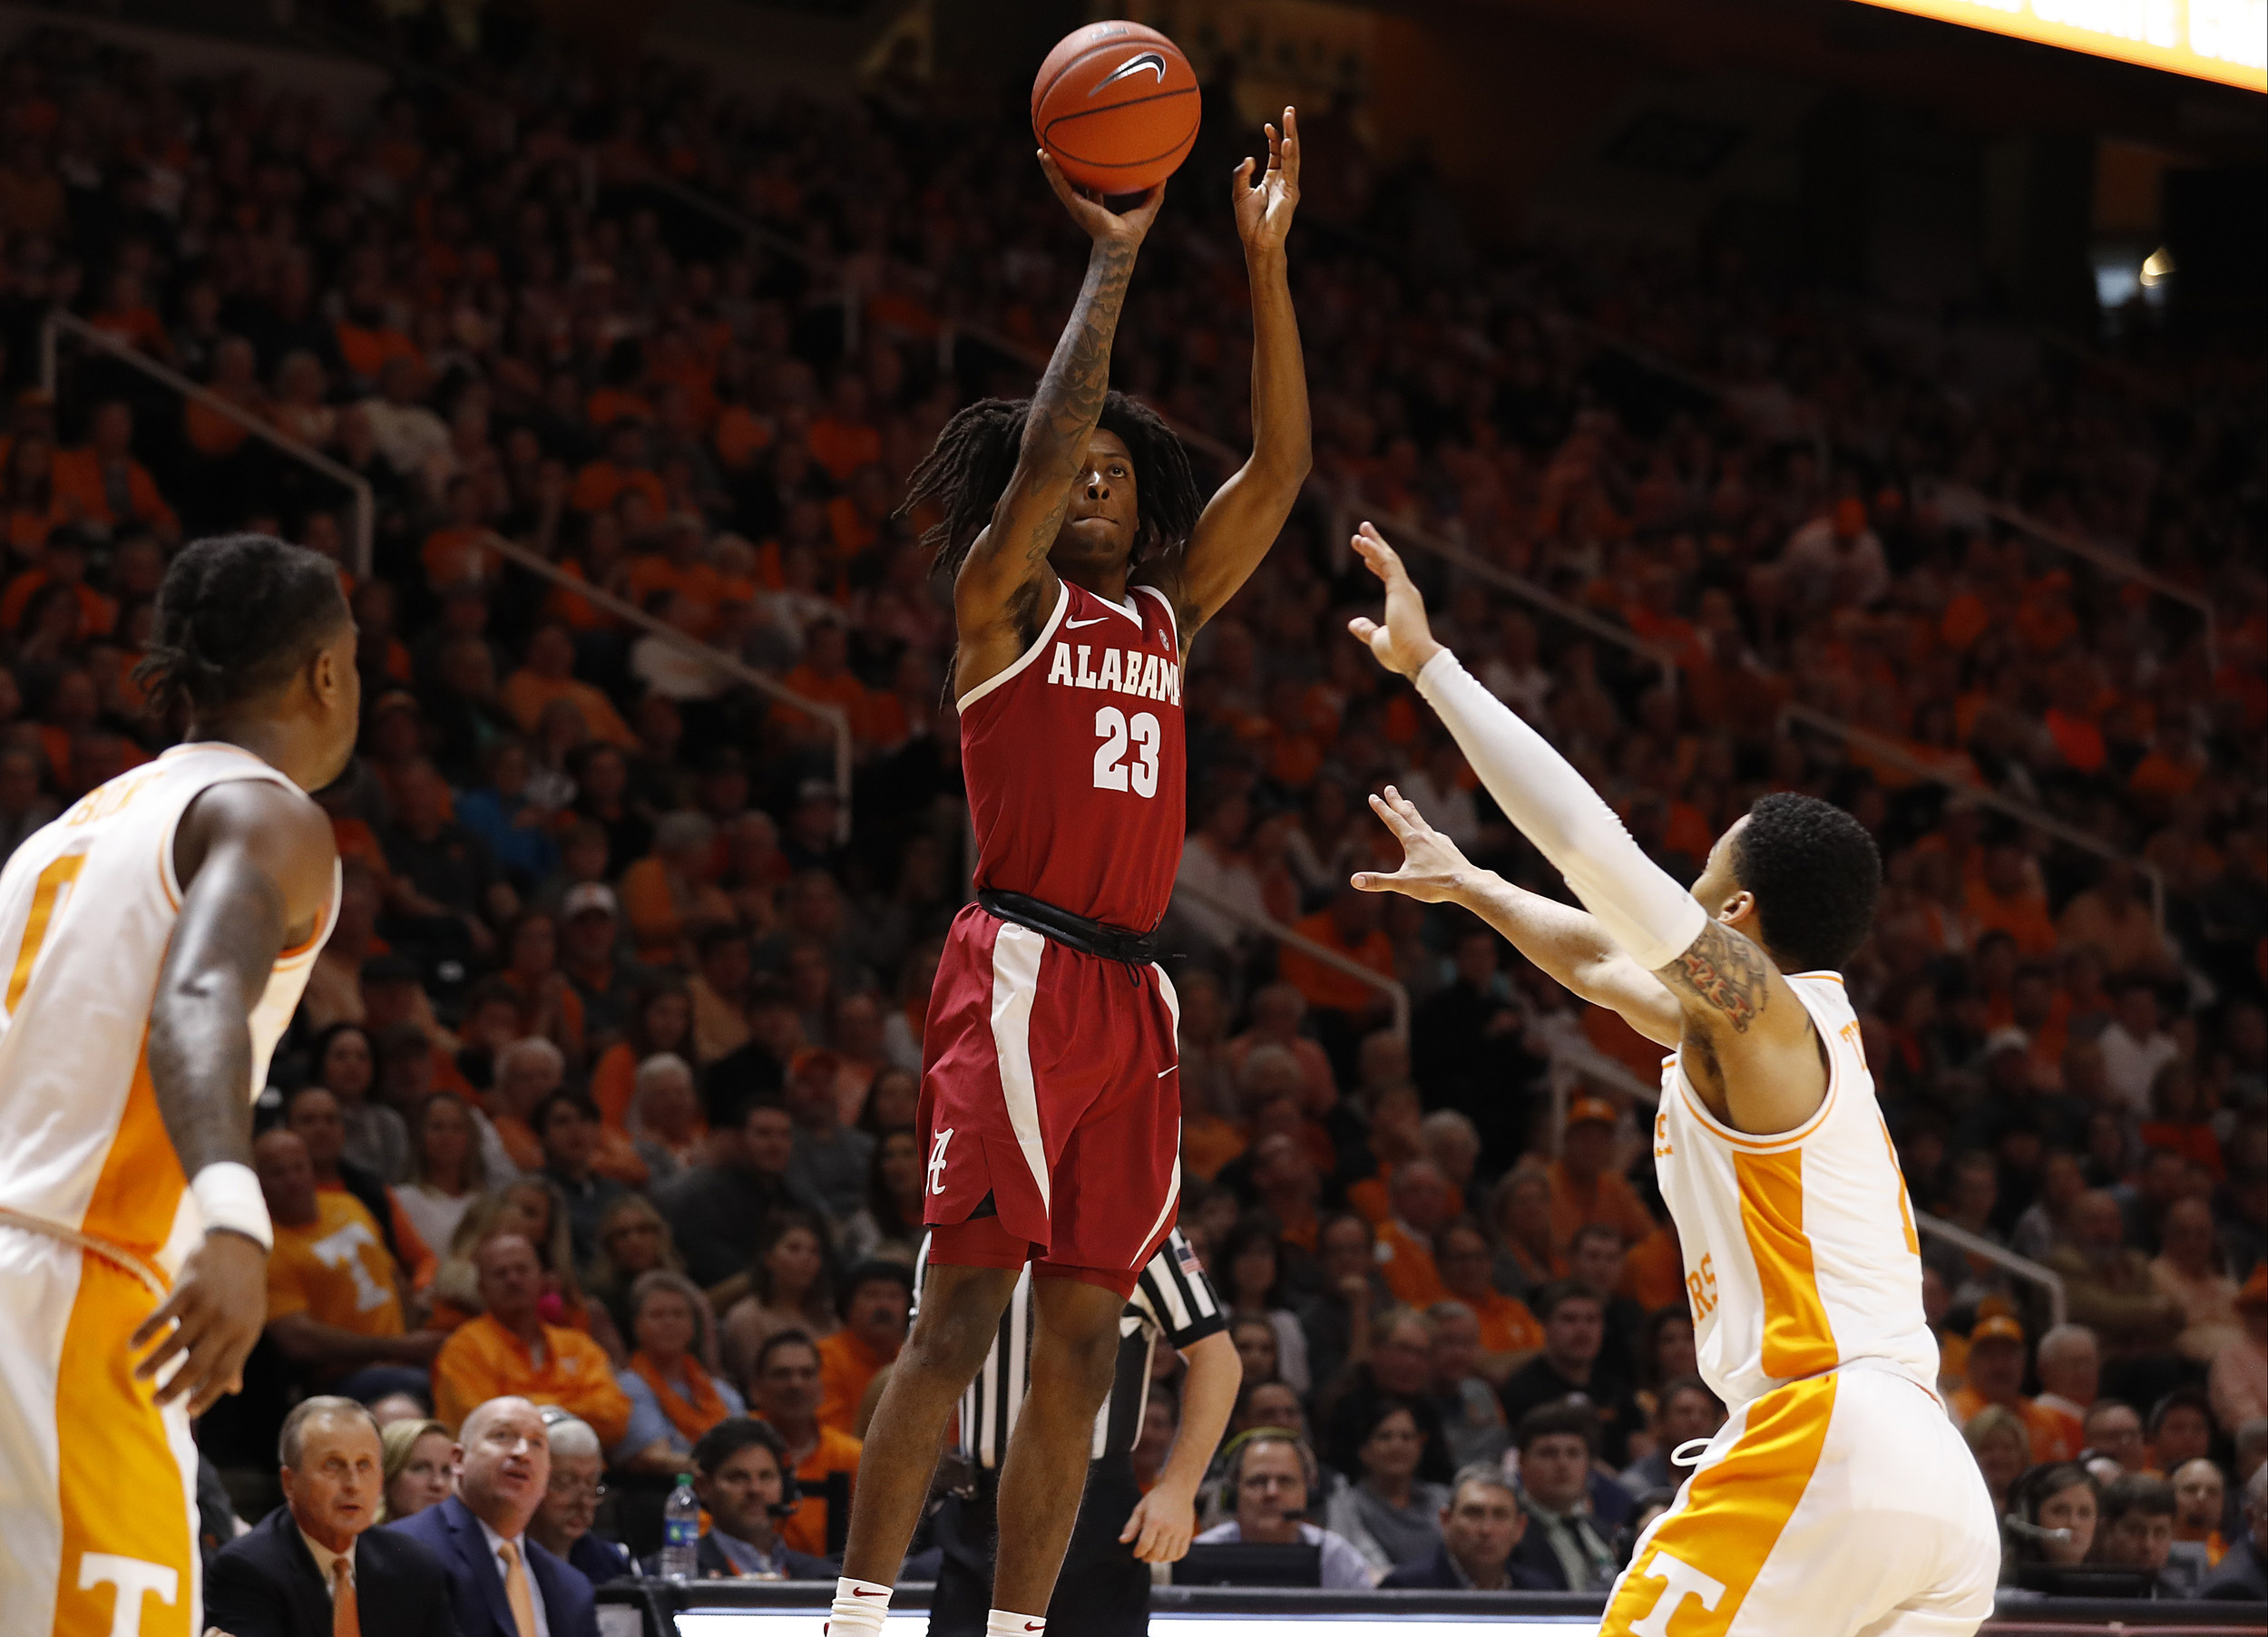 #20/17 Tennessee Lady Vols unable to contain Alabama in 86-65 loss